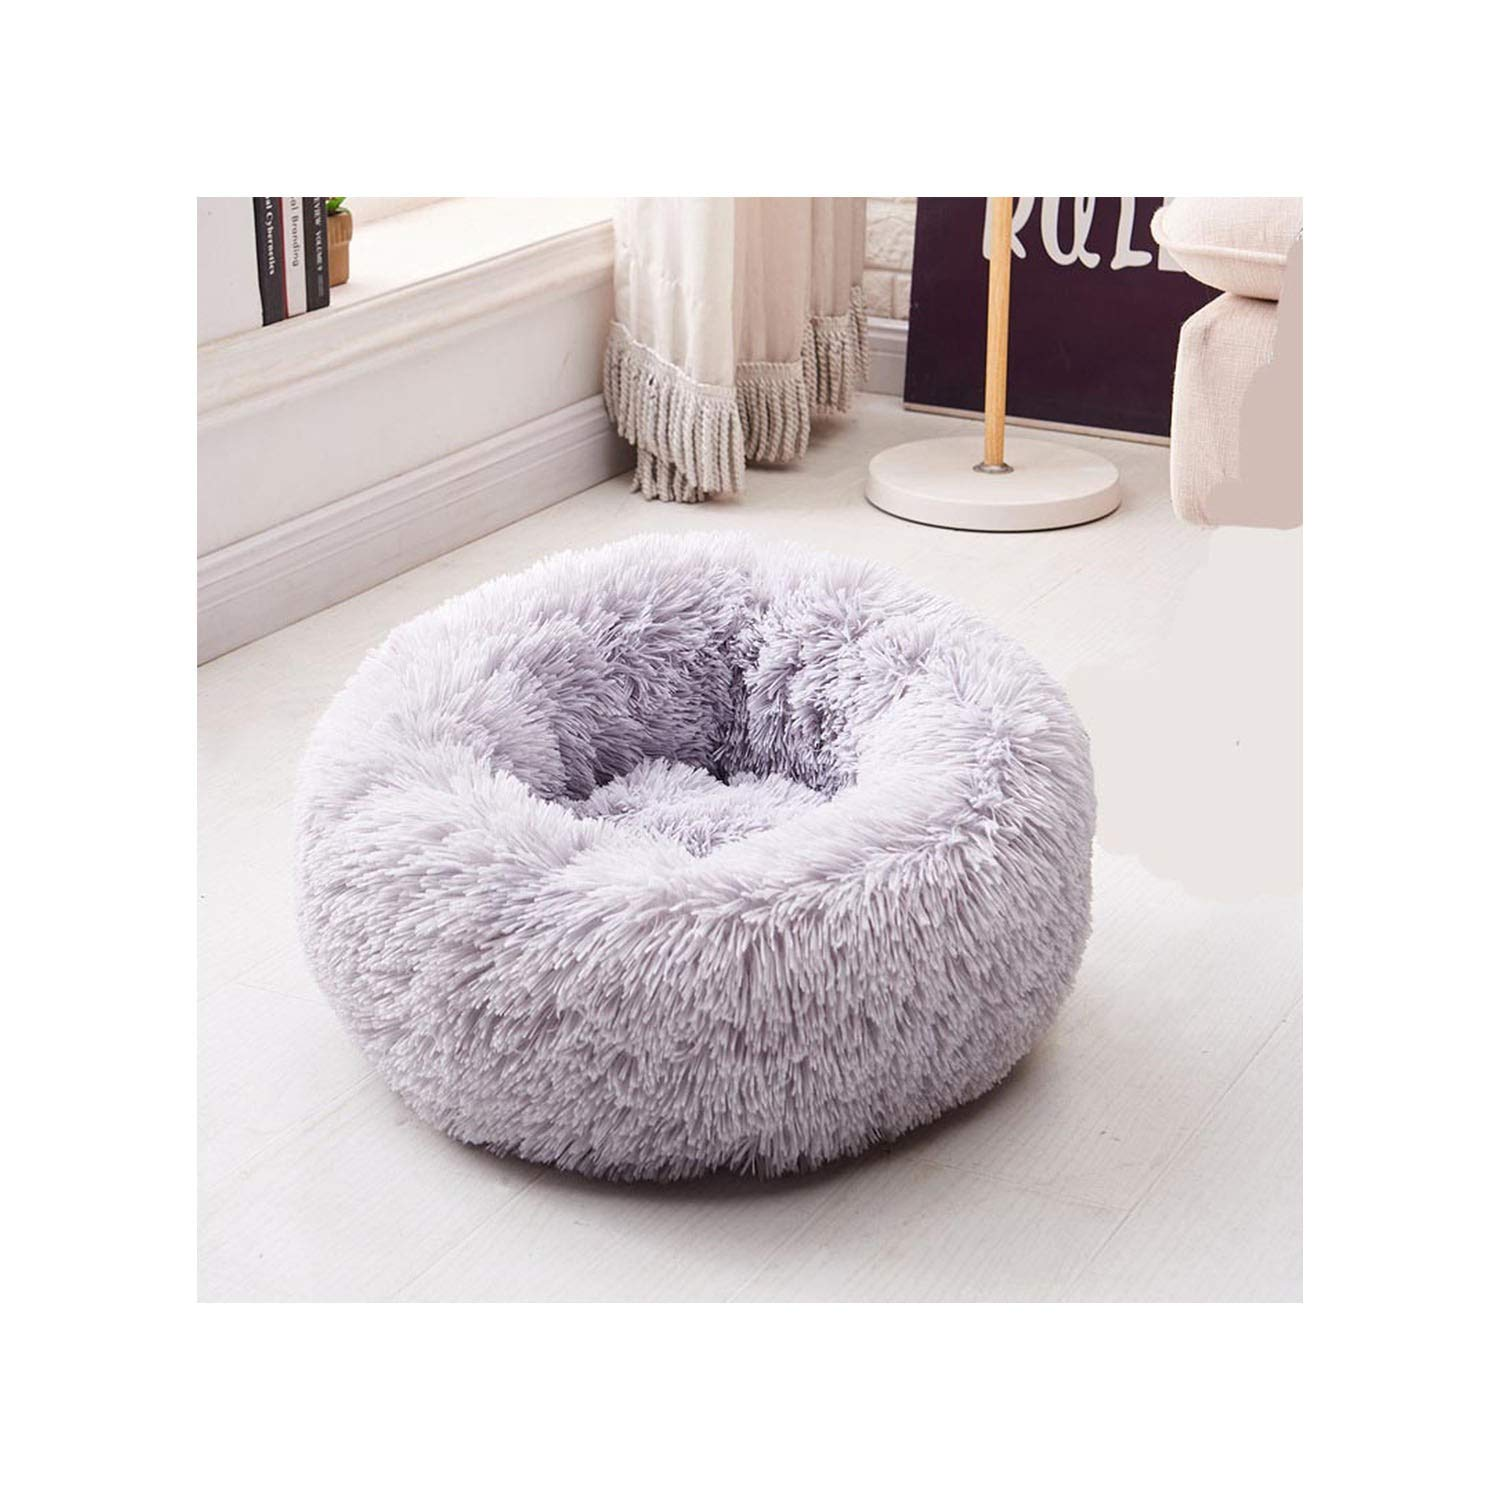 Fantastic Amazon Com Round Dog Bed Washable Pet Cat Bed Dog Squirreltailoven Fun Painted Chair Ideas Images Squirreltailovenorg